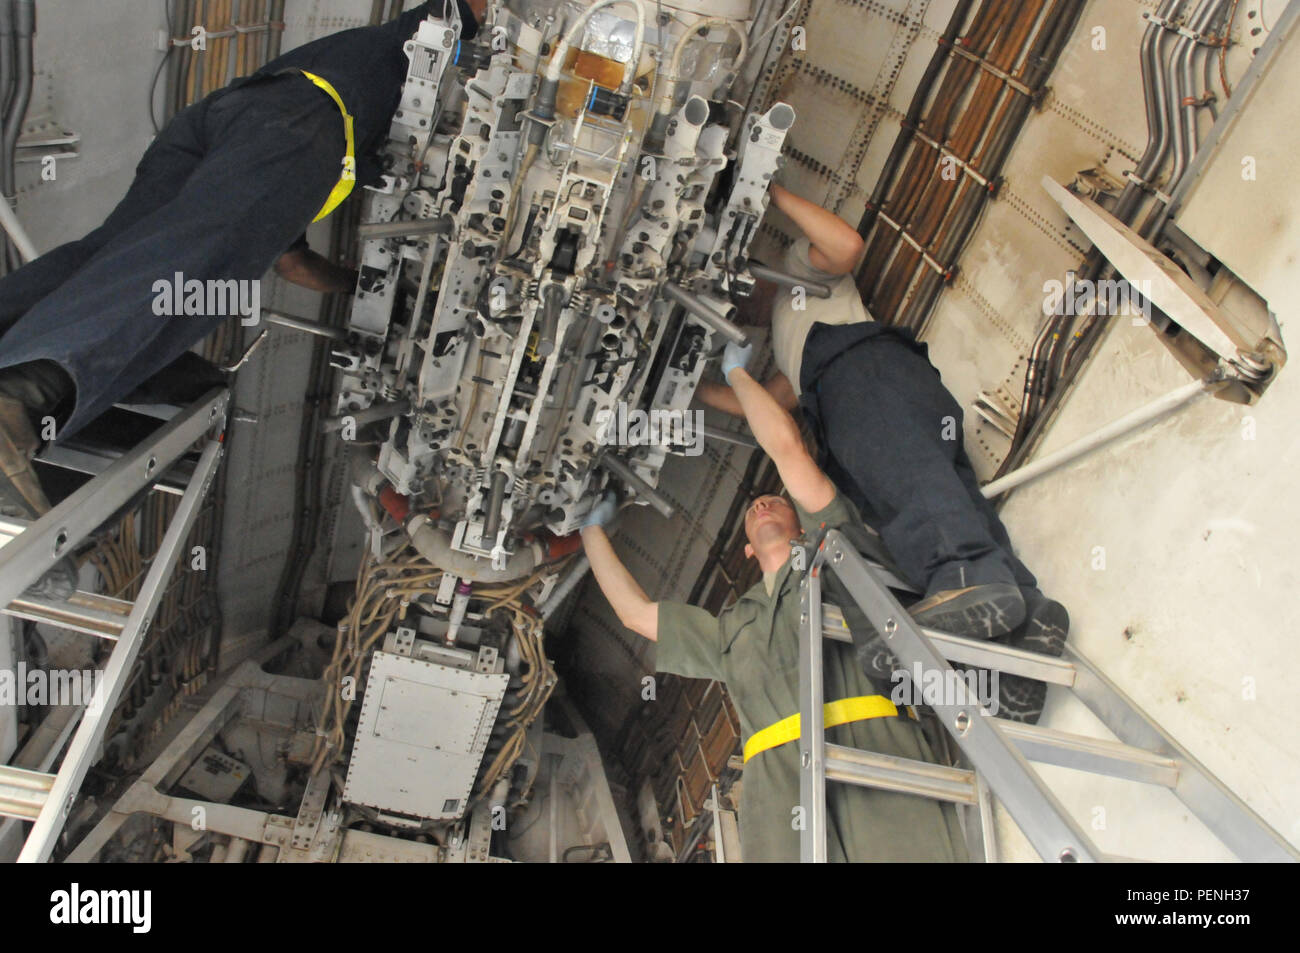 Loose Wiring Stock Photos Images Alamy Maintainer Diagram Three 379th Expeditionary Aircraft Maintenance Squadron Crew Chiefs Perform A Post Flight Inspection On